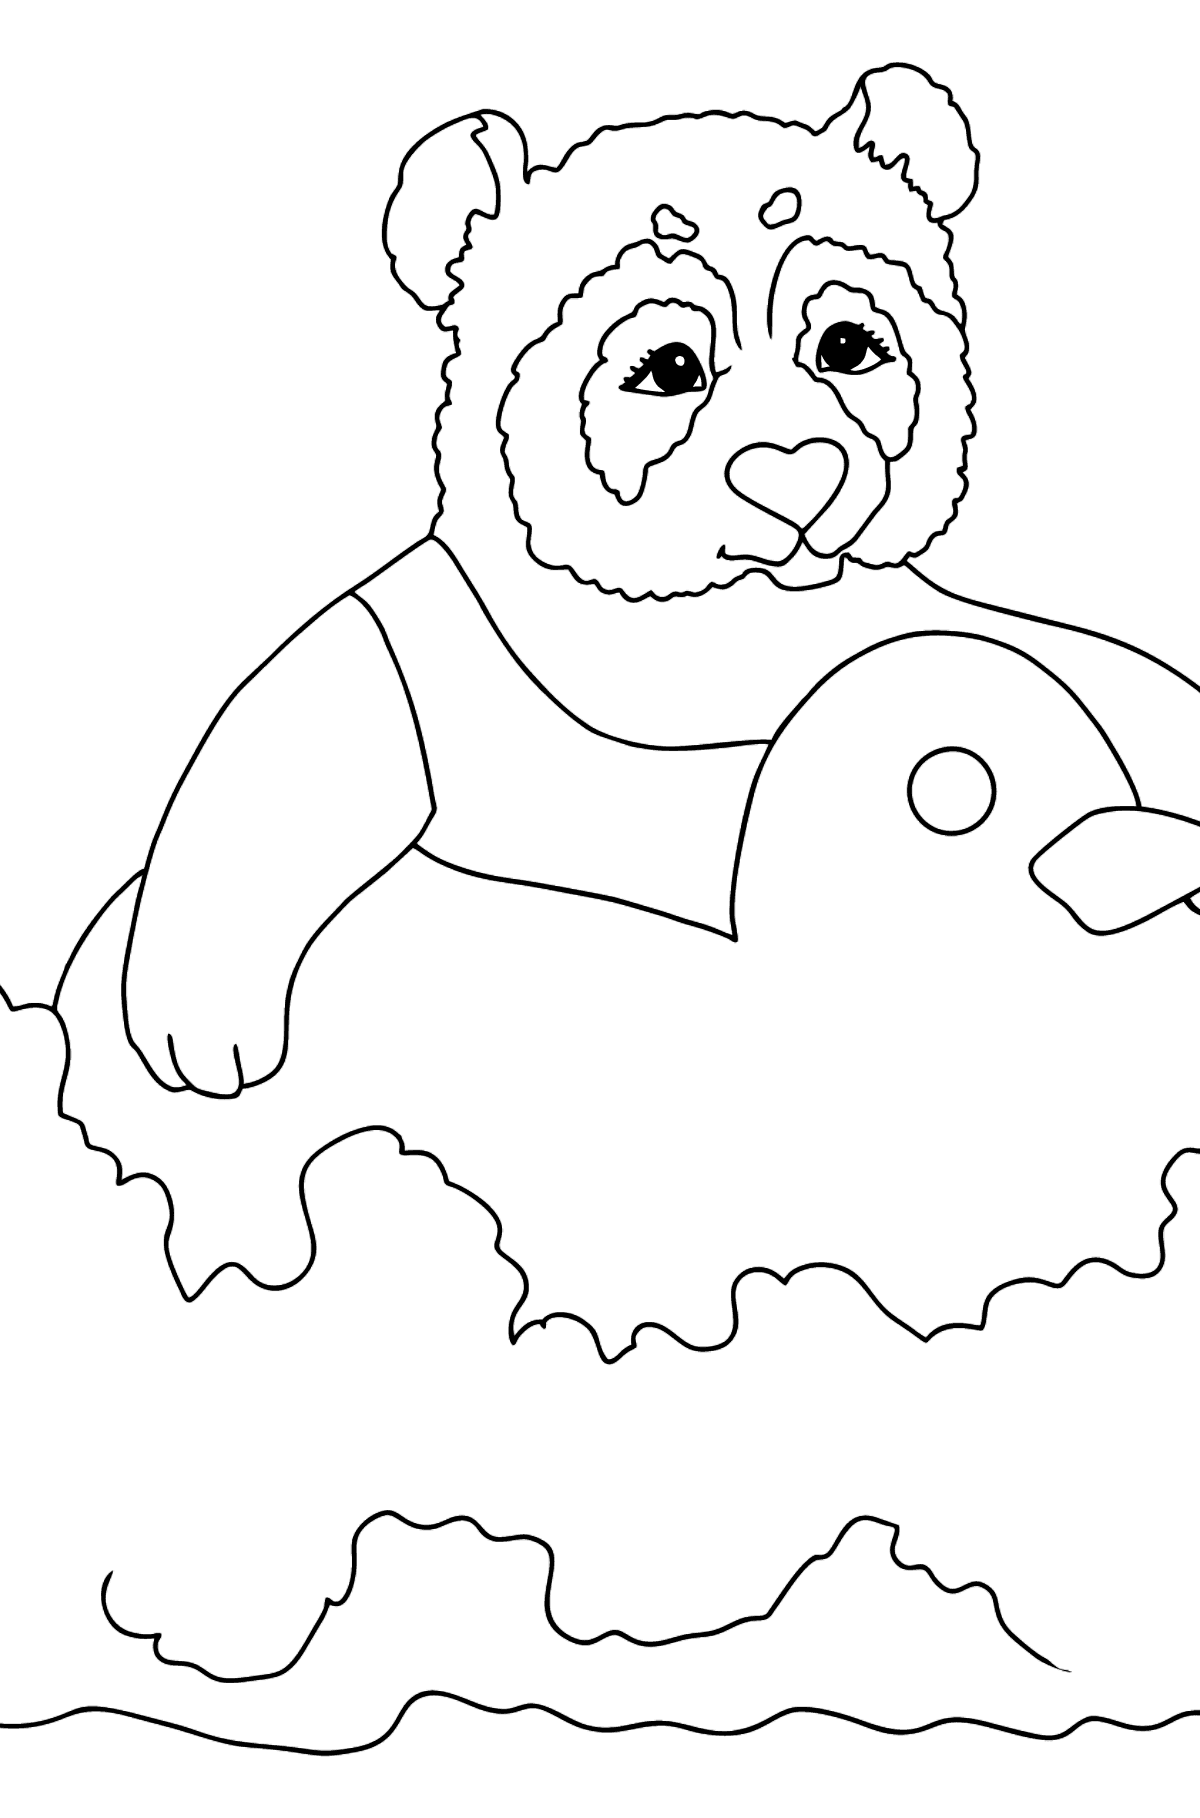 Coloring Picture - A Panda is Swimming - Coloring Pages for Kids